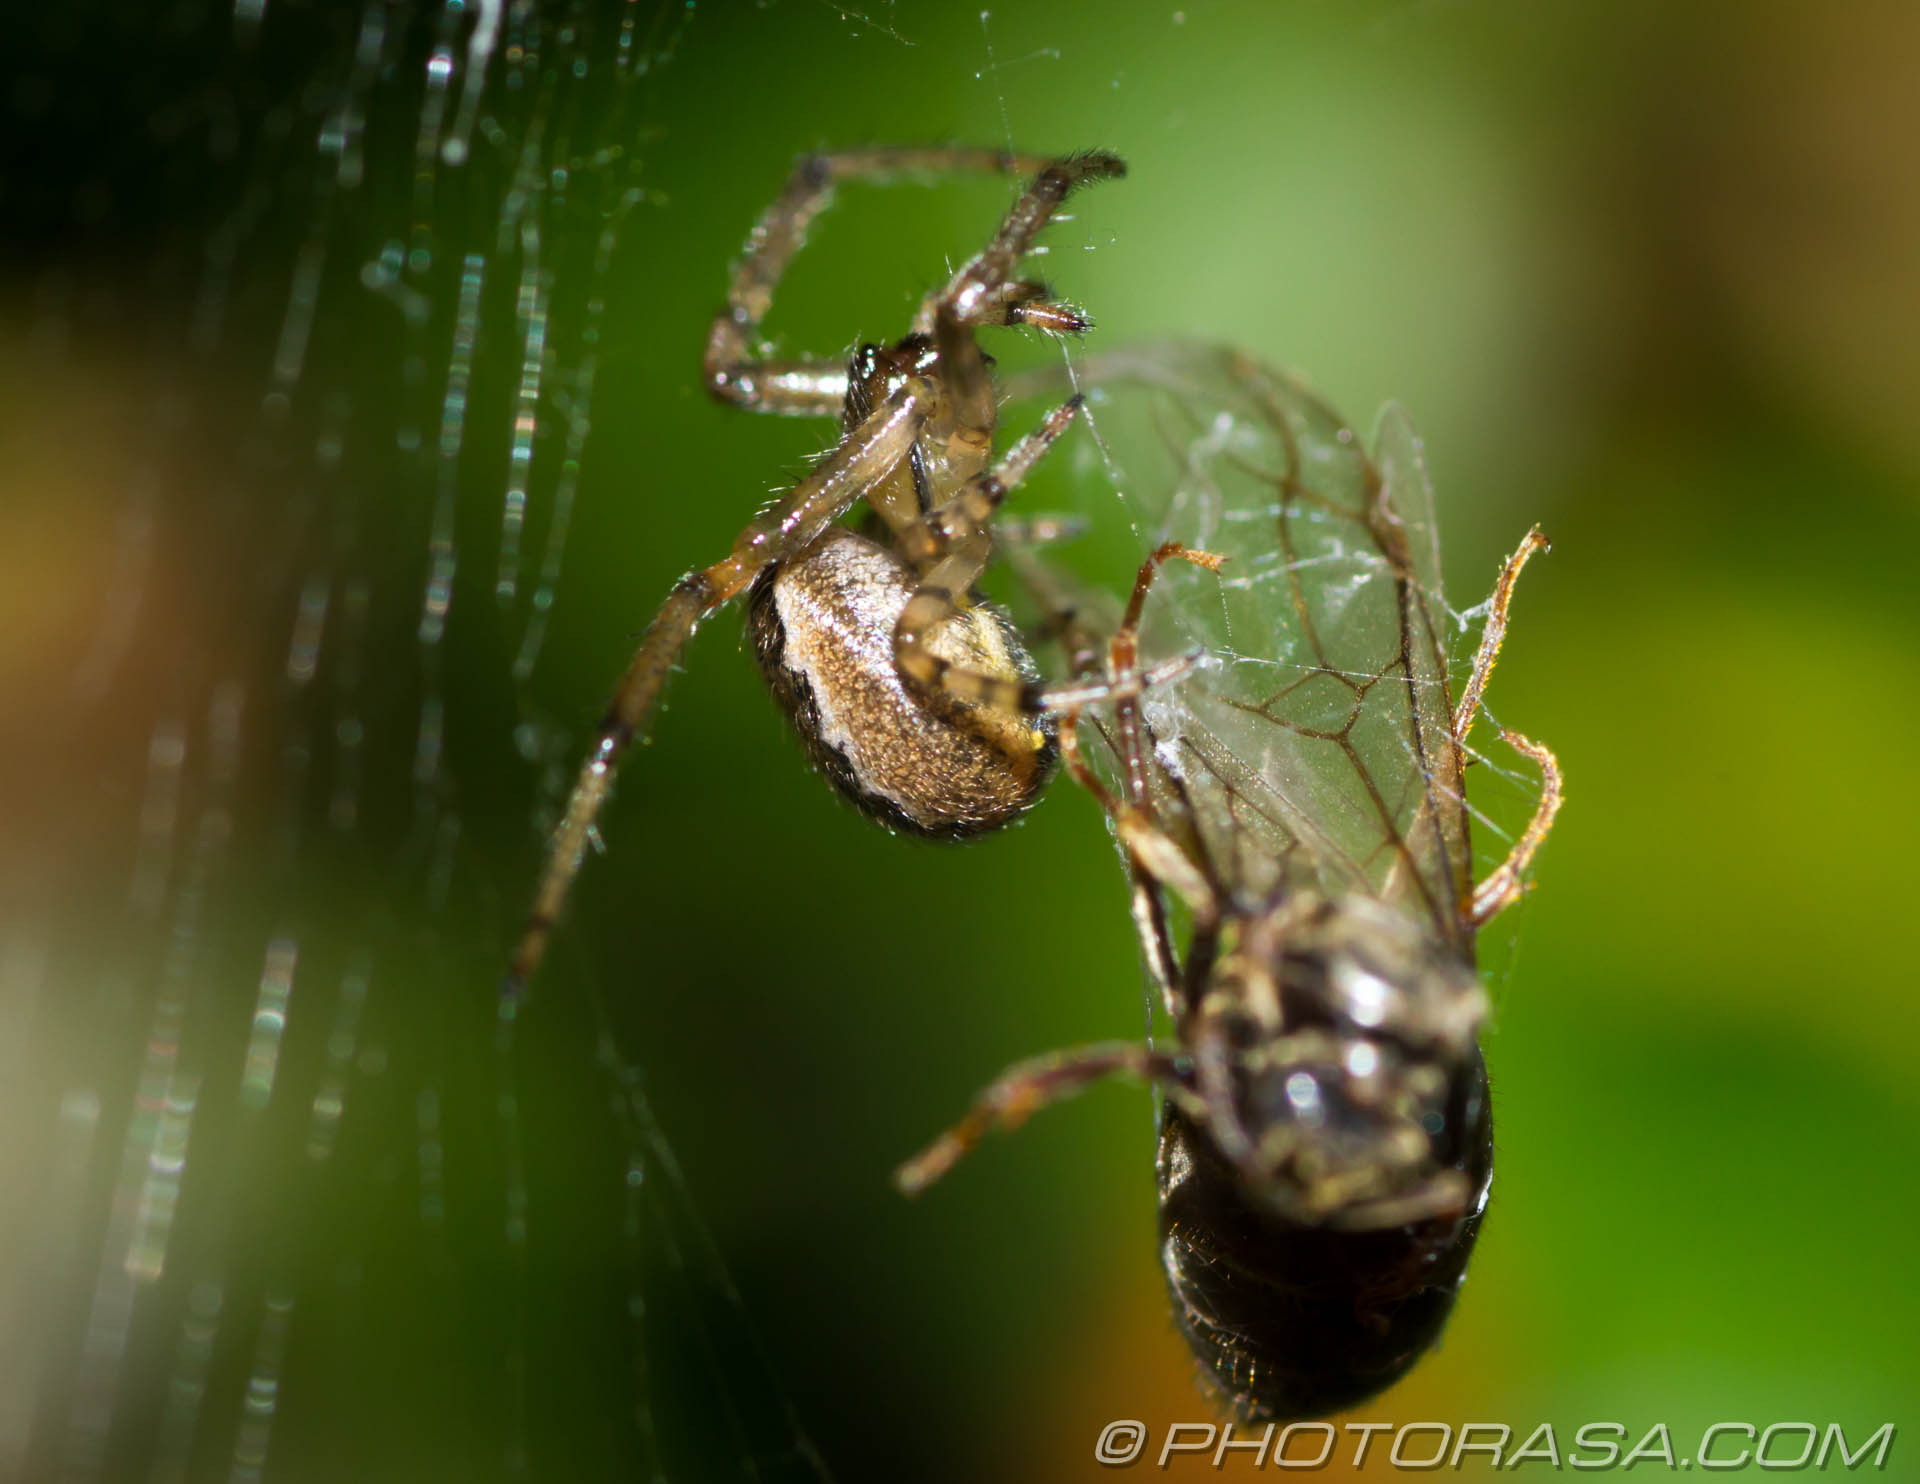 http://photorasa.com/spider-trapping-wrapping-fly/spinning-with-the-legs/